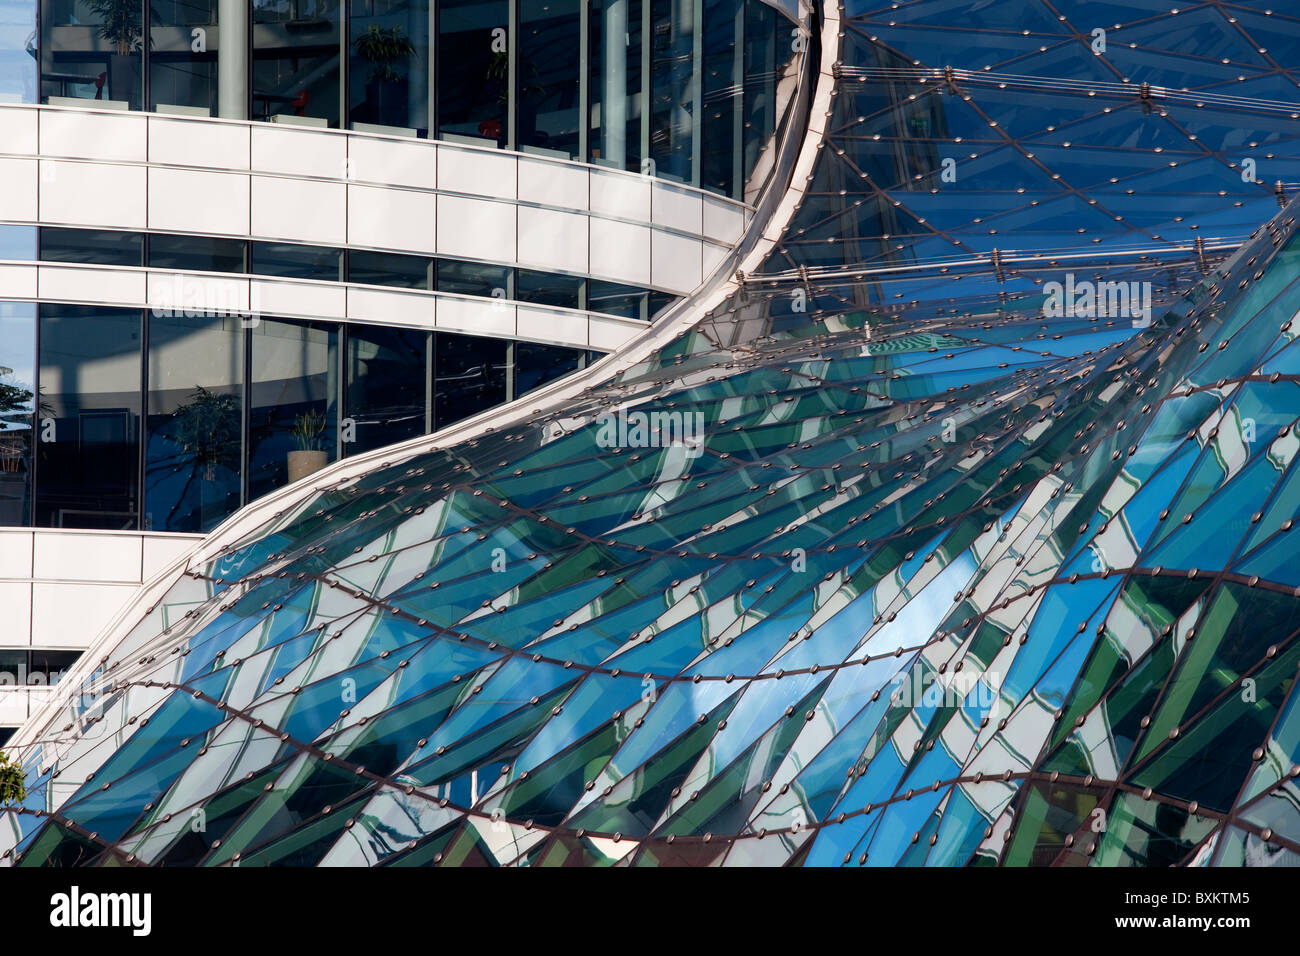 Abstract architecture of a modern contemporary building, reflections on a glass roof - Stock Image